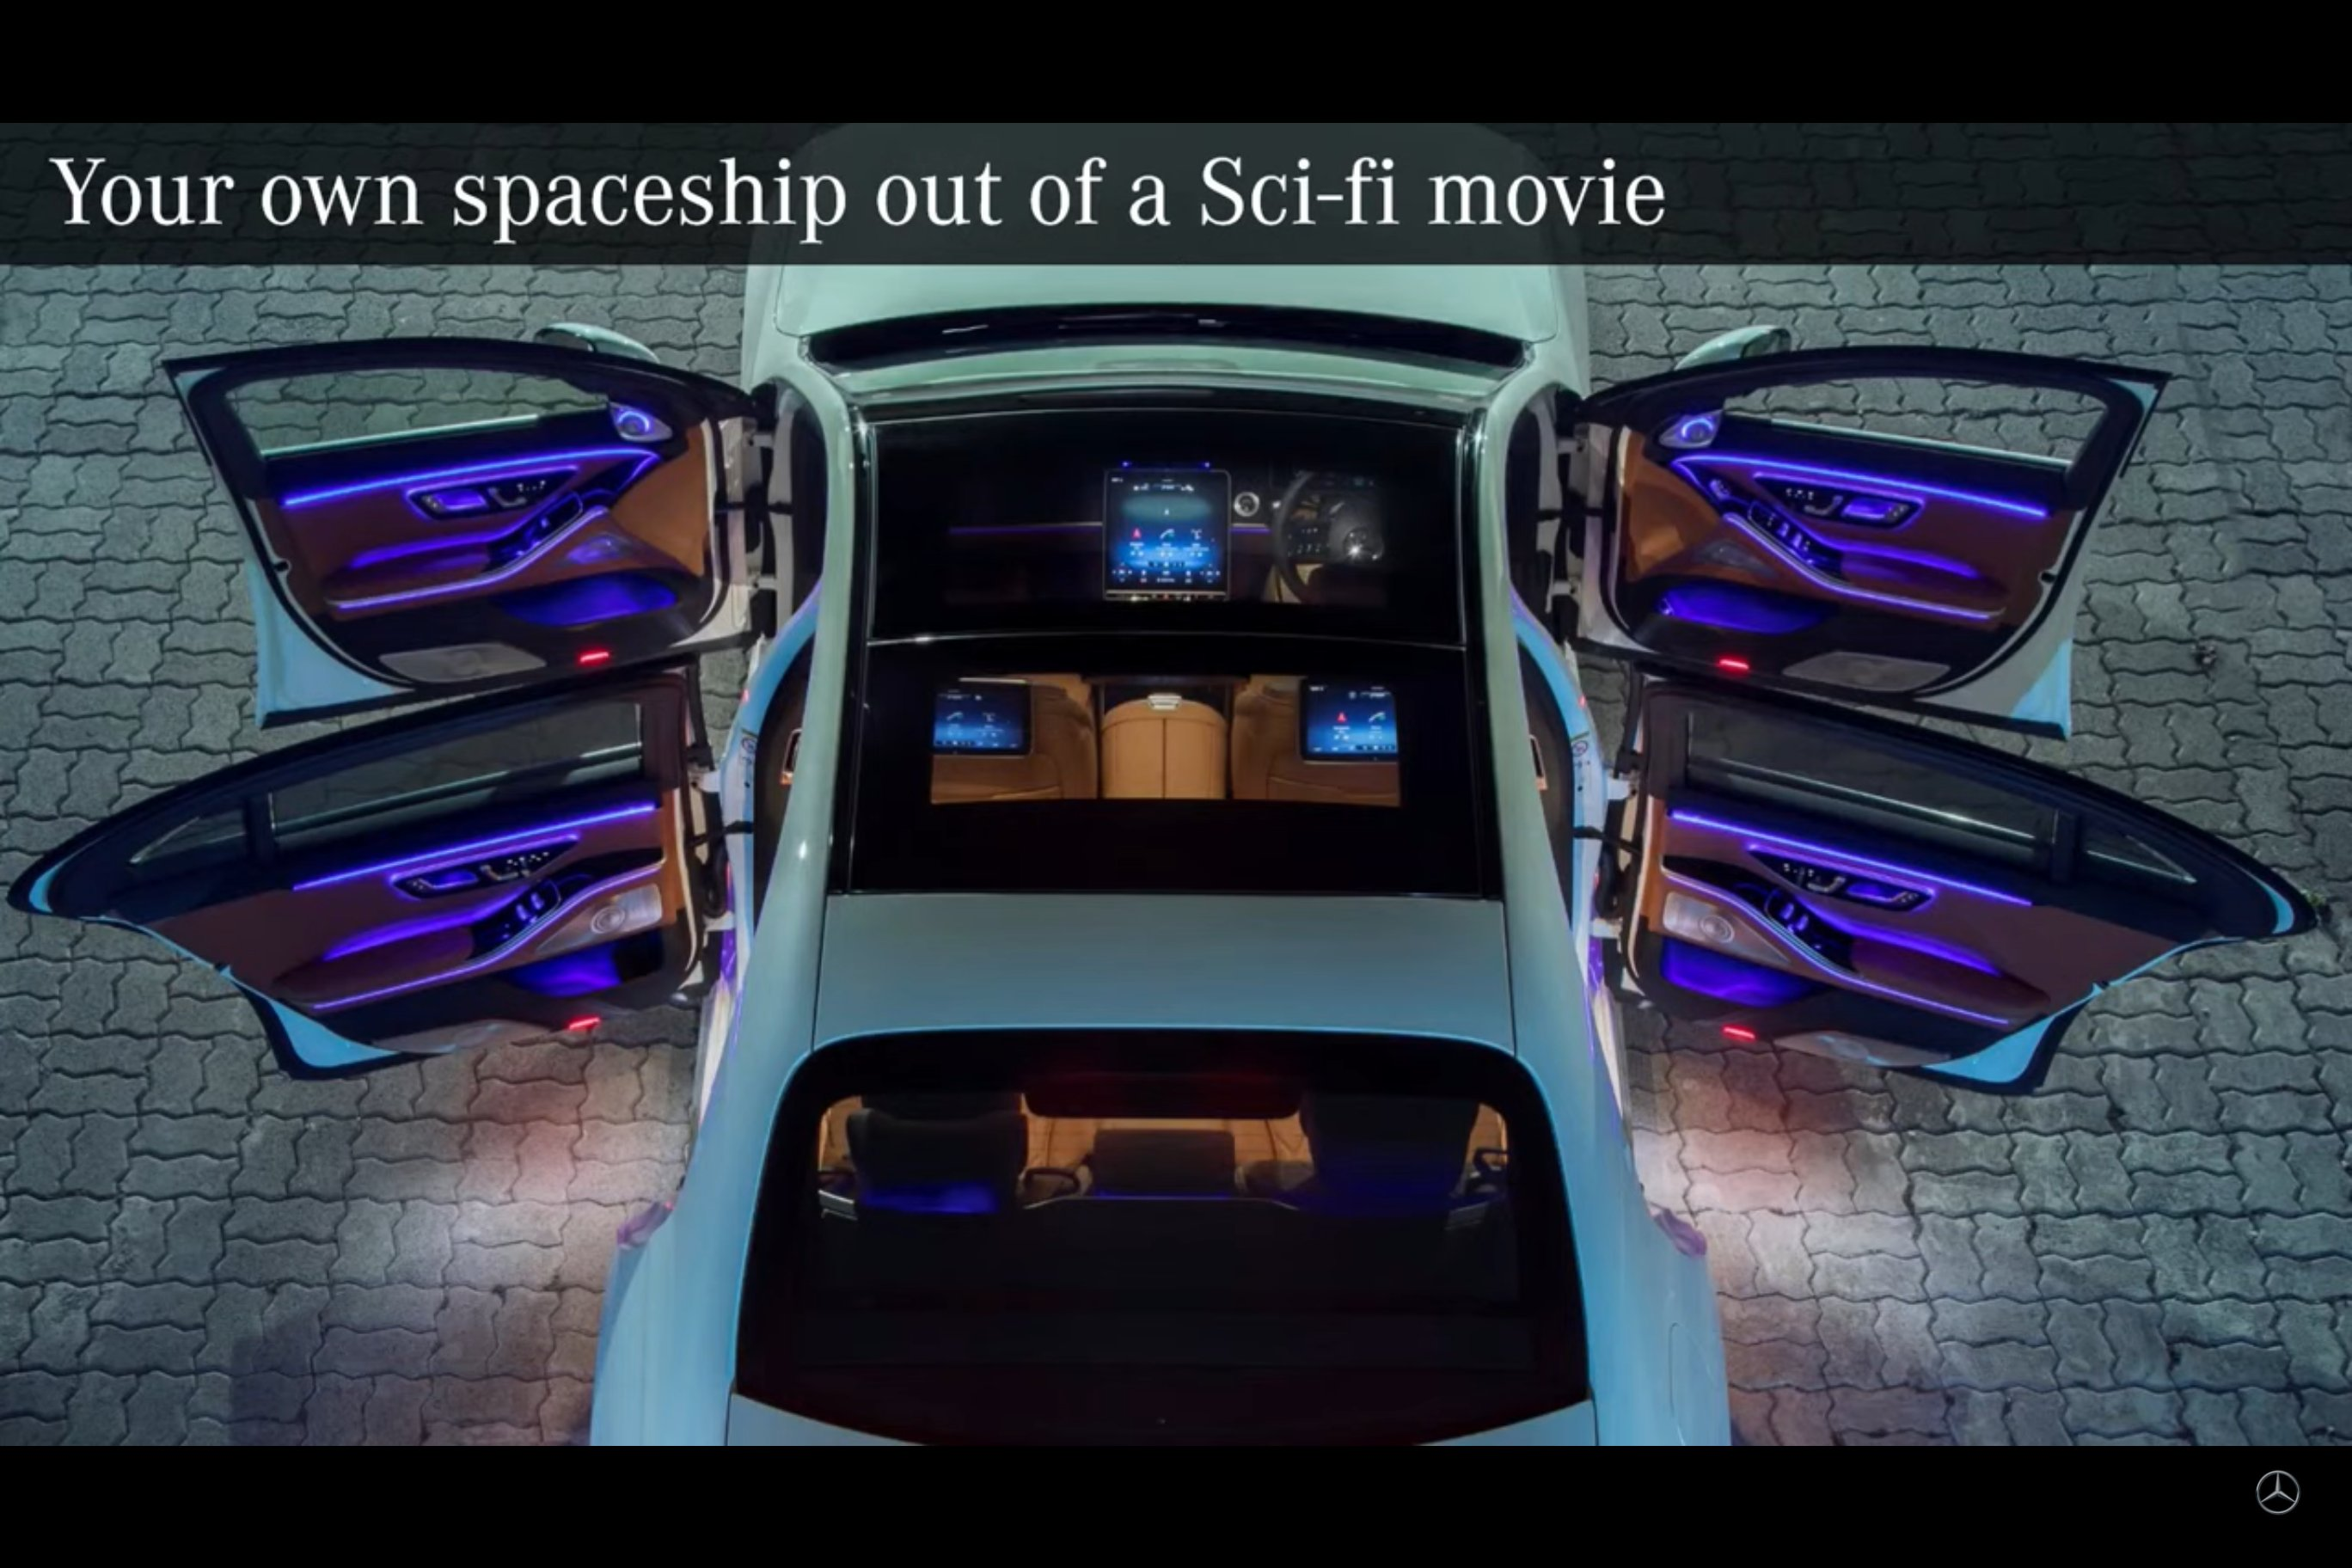 <p>Gorgeous image of the LED light effect dominating the interior of the Mercedes-Benz S-Class.</p>